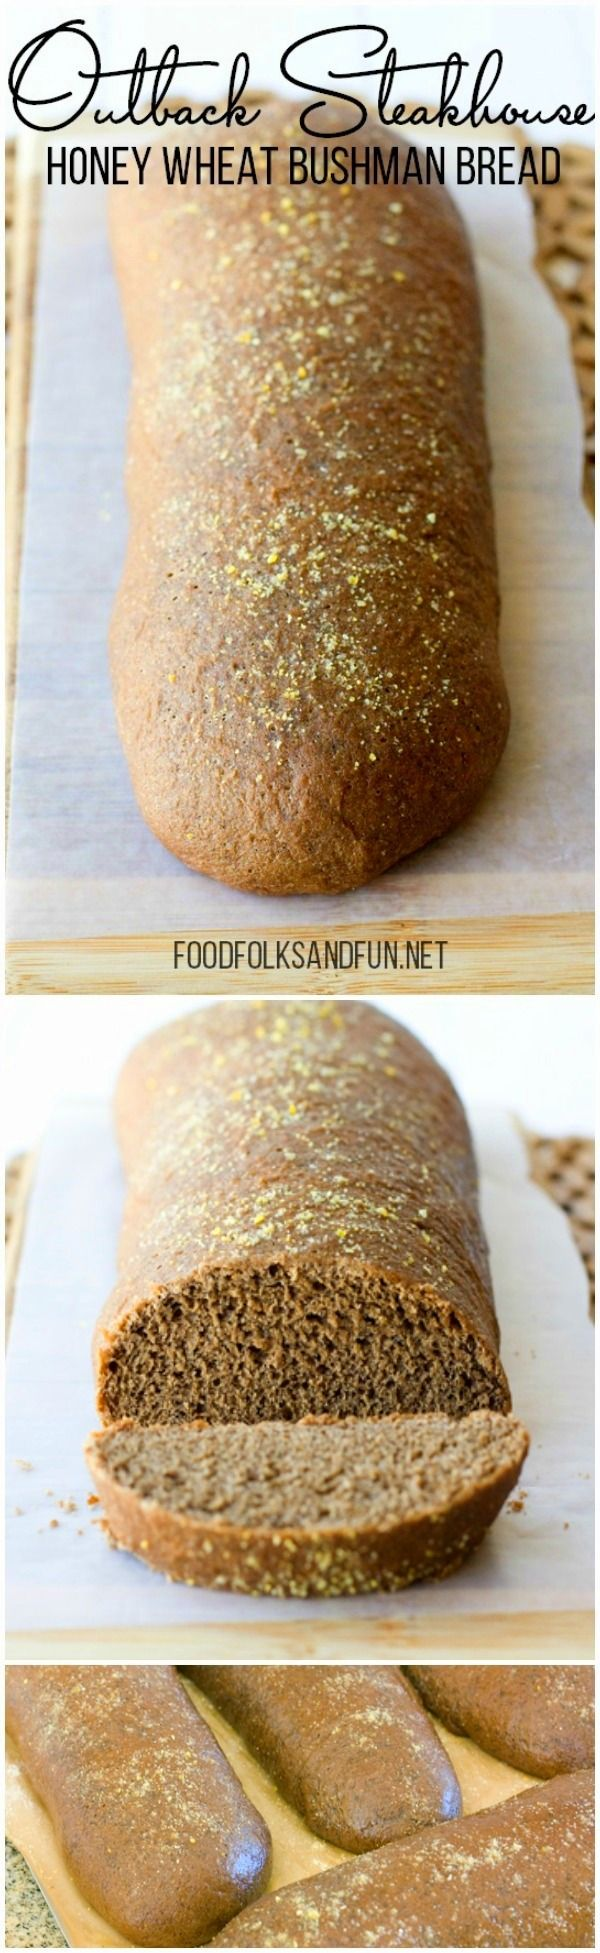 Honey Wheat Bushman Bread Recipe – an Outback Steakhouse Copycat! | www.foodfolksandfun.net | #Recipe #CopycatRecipe